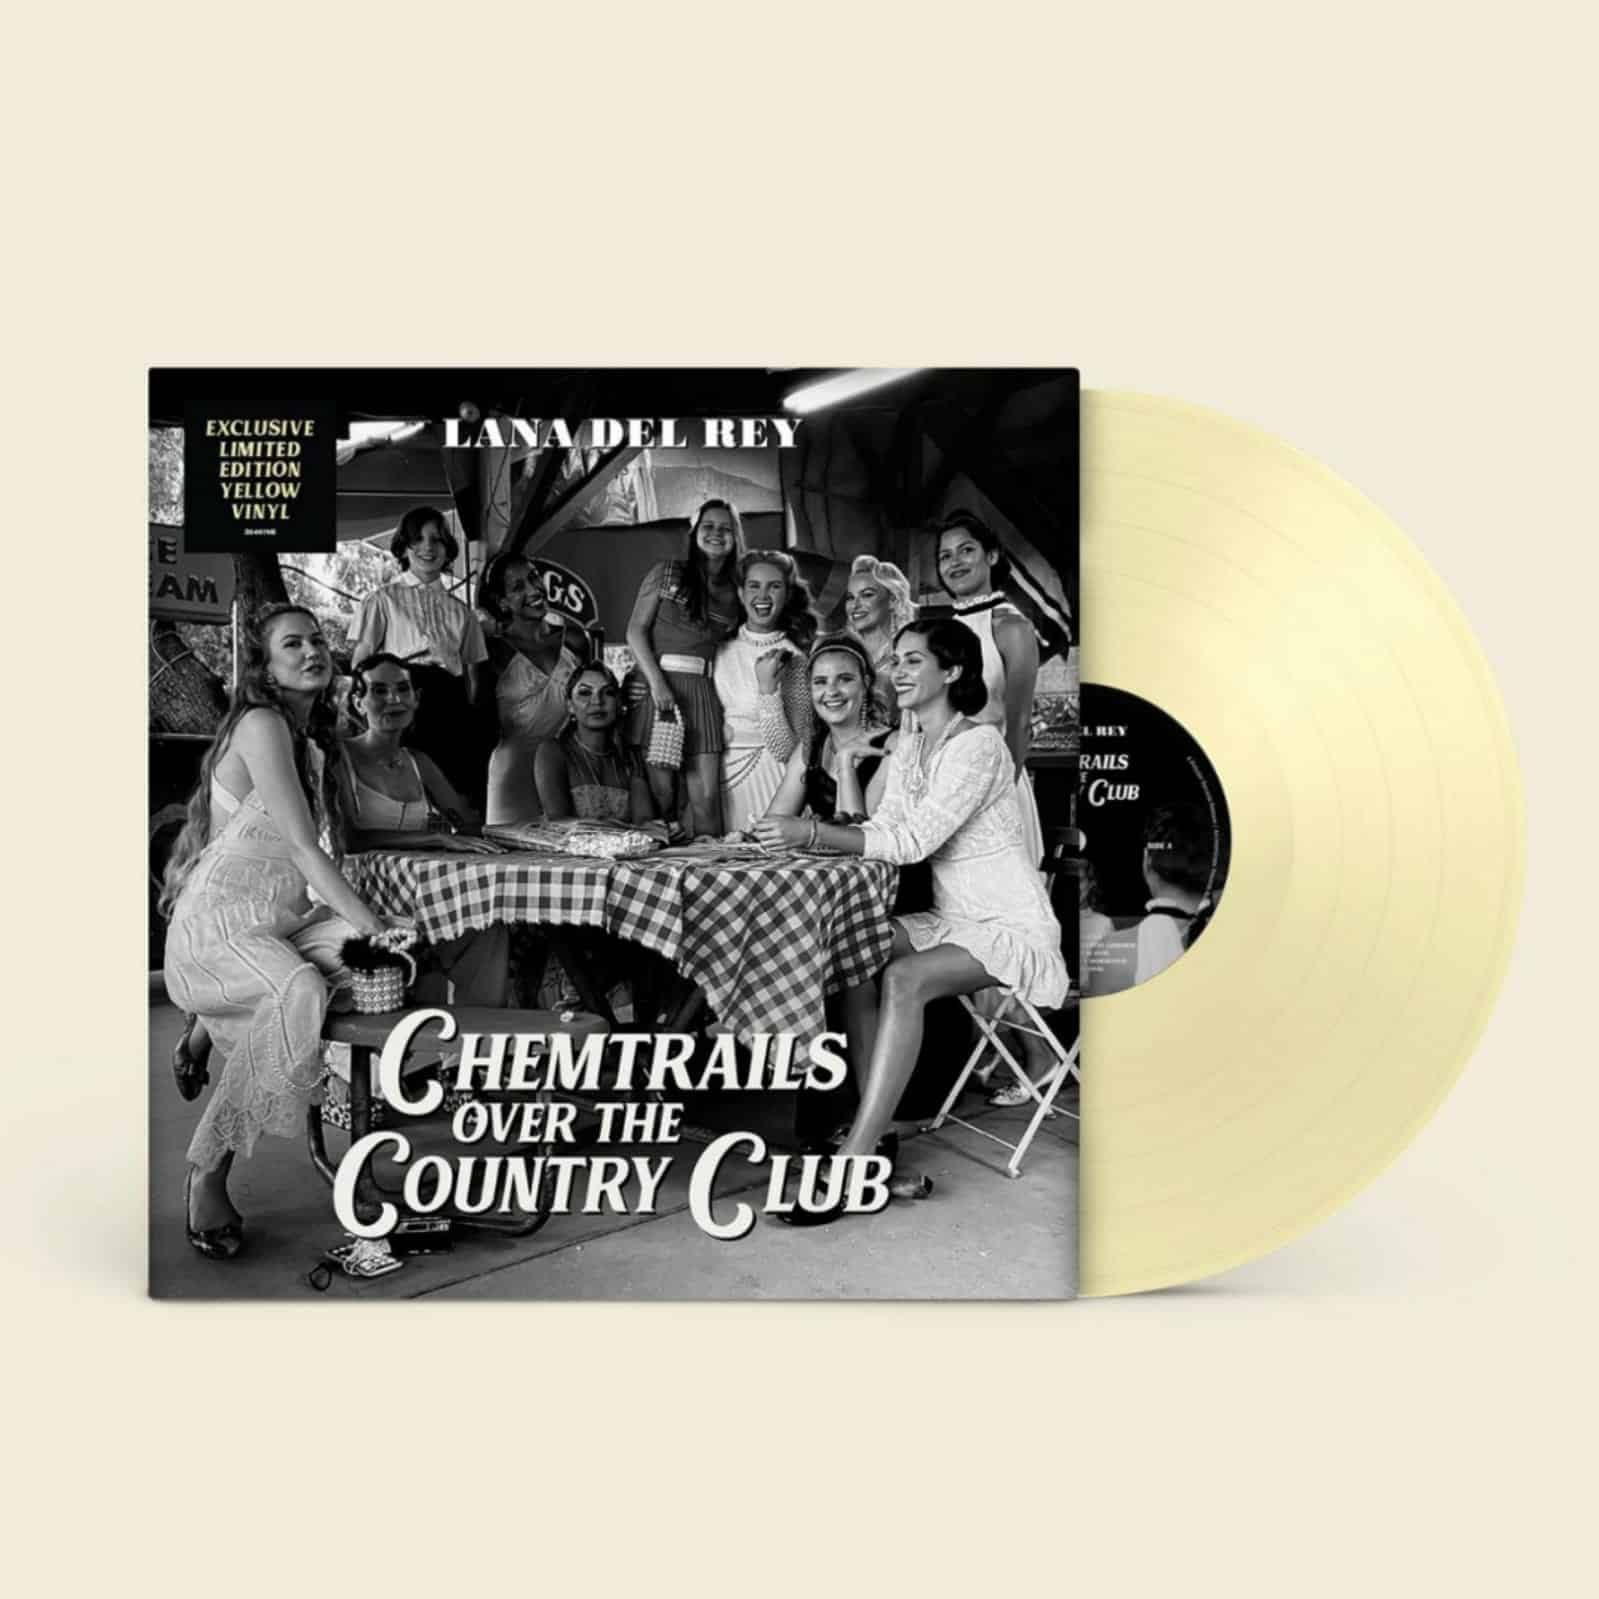 Lana Del Rey - Chemtrails Over The Country Club Limited Edition Indies Exclusive Yellow Vinyl